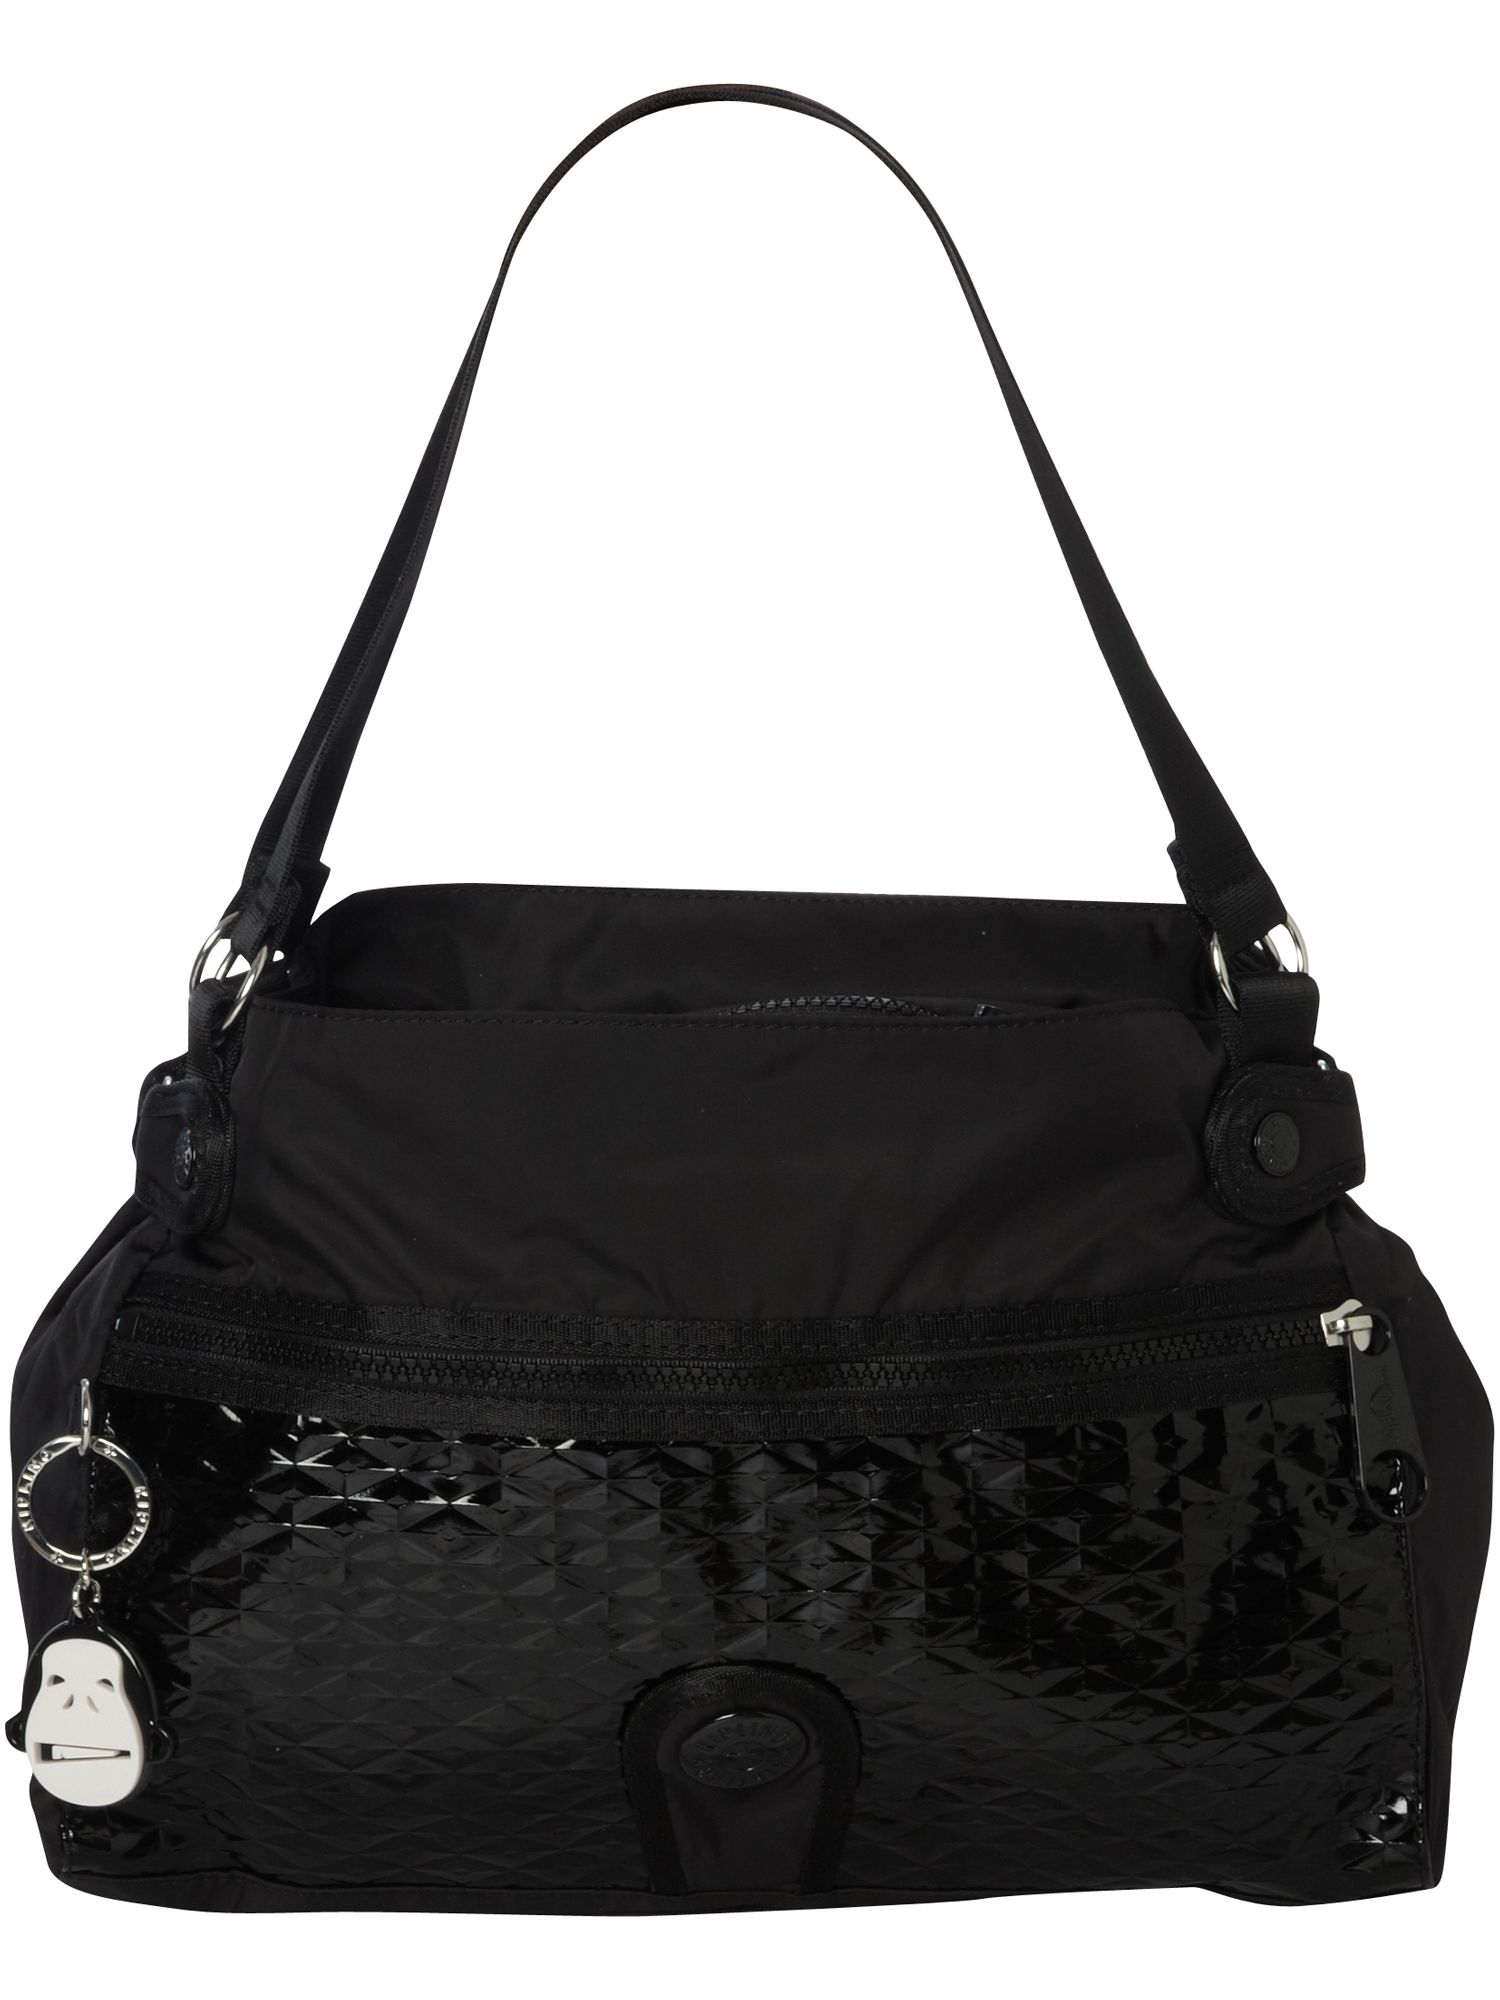 G*rilla Glitz medium nylon shoulder tote